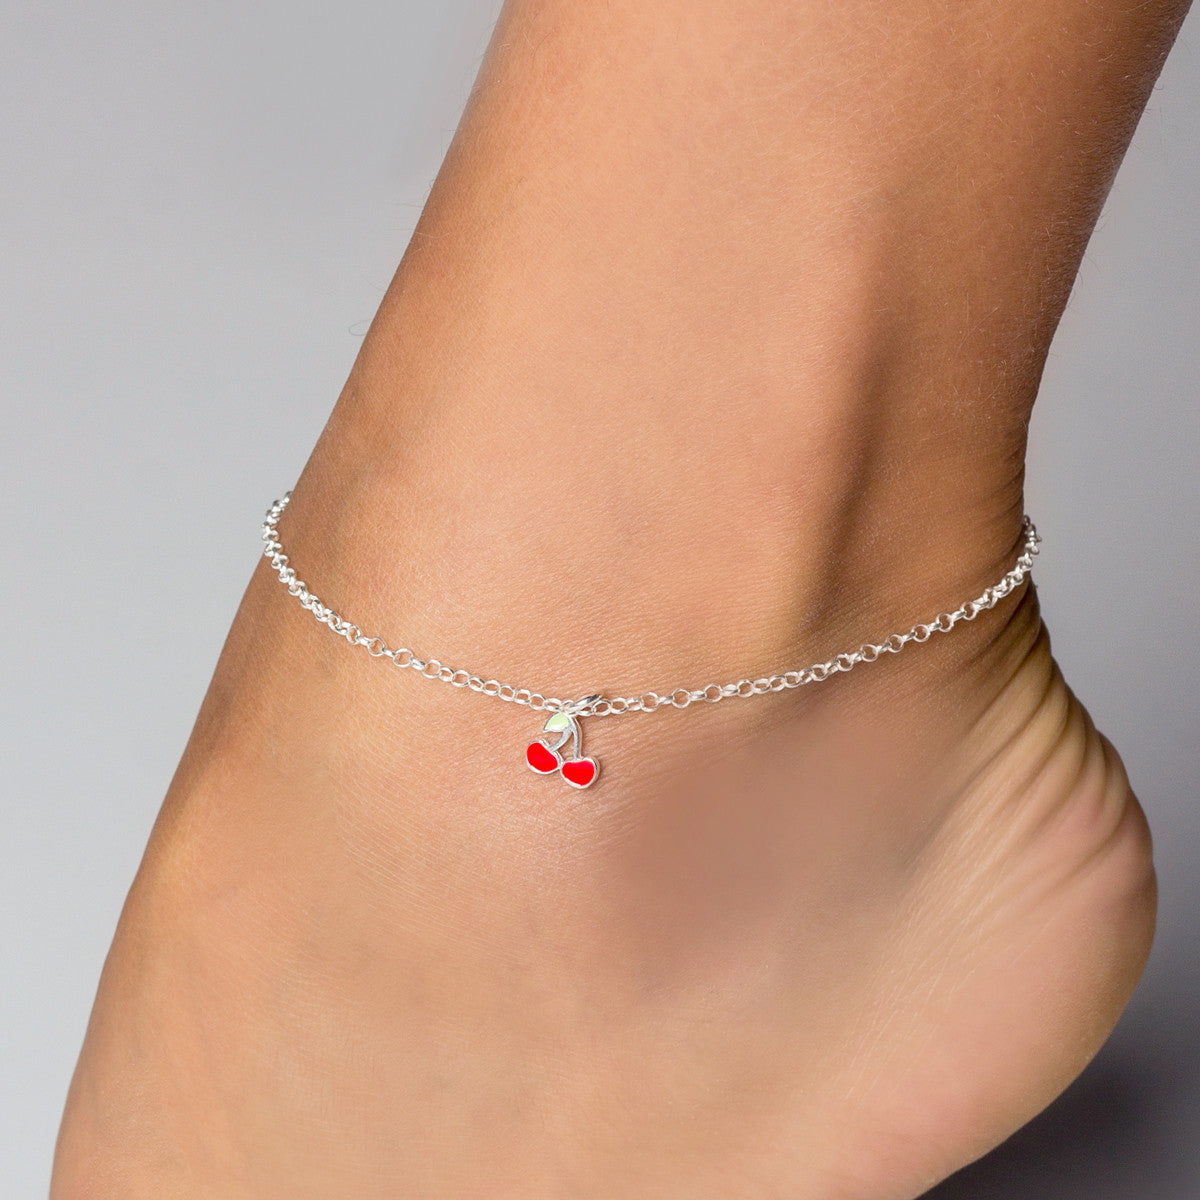 sterling silver evil something eye good anklet bracelets olizz bracelet ankle megaera blue luck